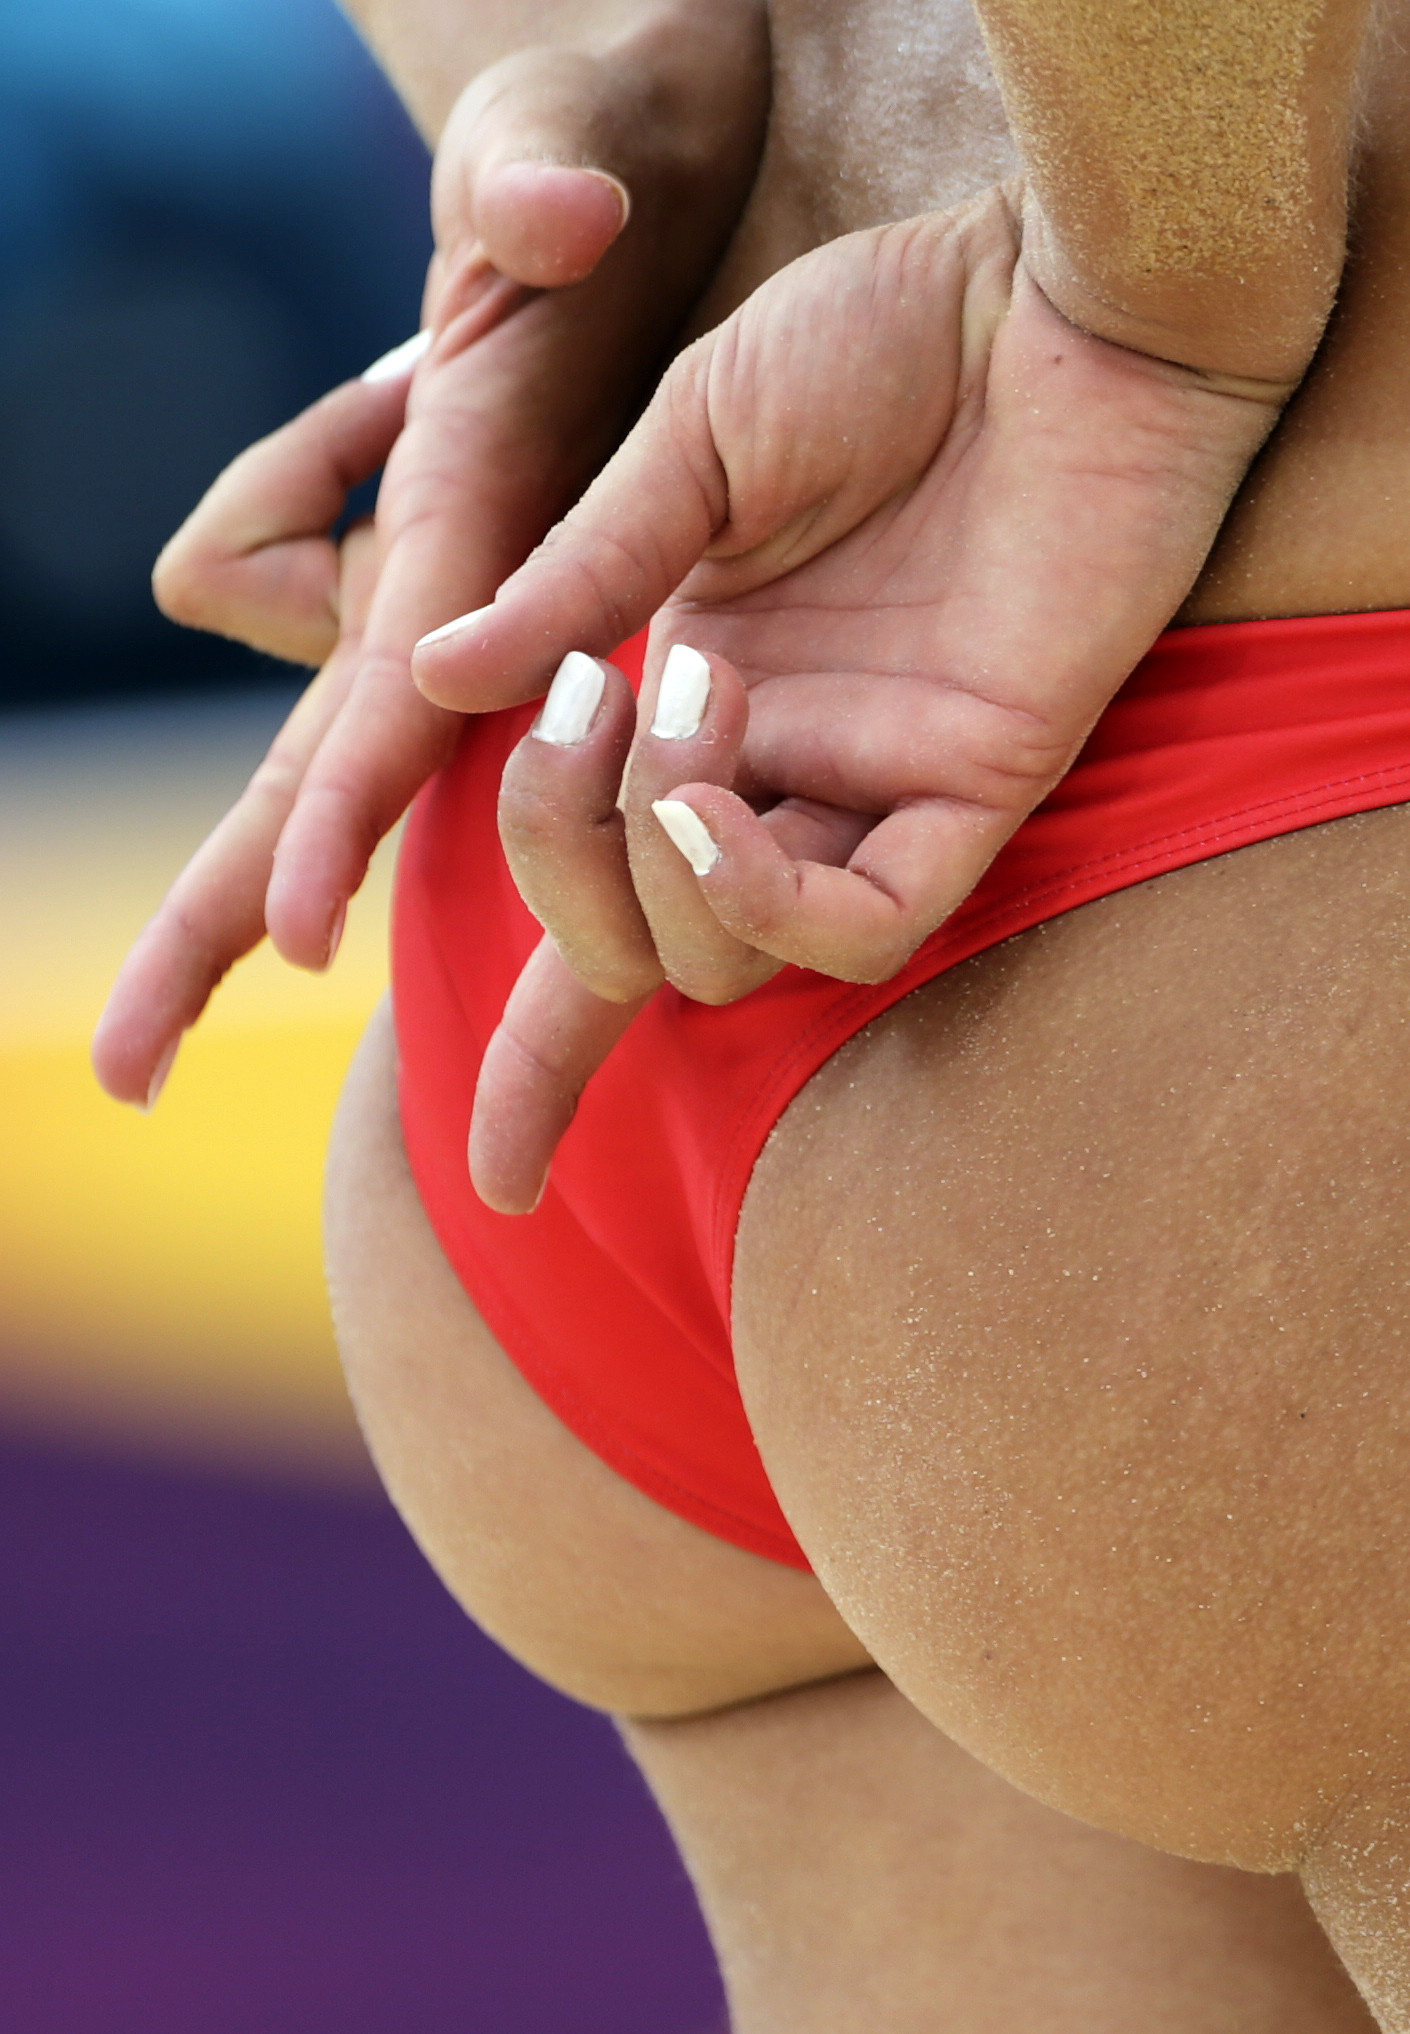 Beach Volleyball Photos Focus On Women's Body Parts -- Not Their ...